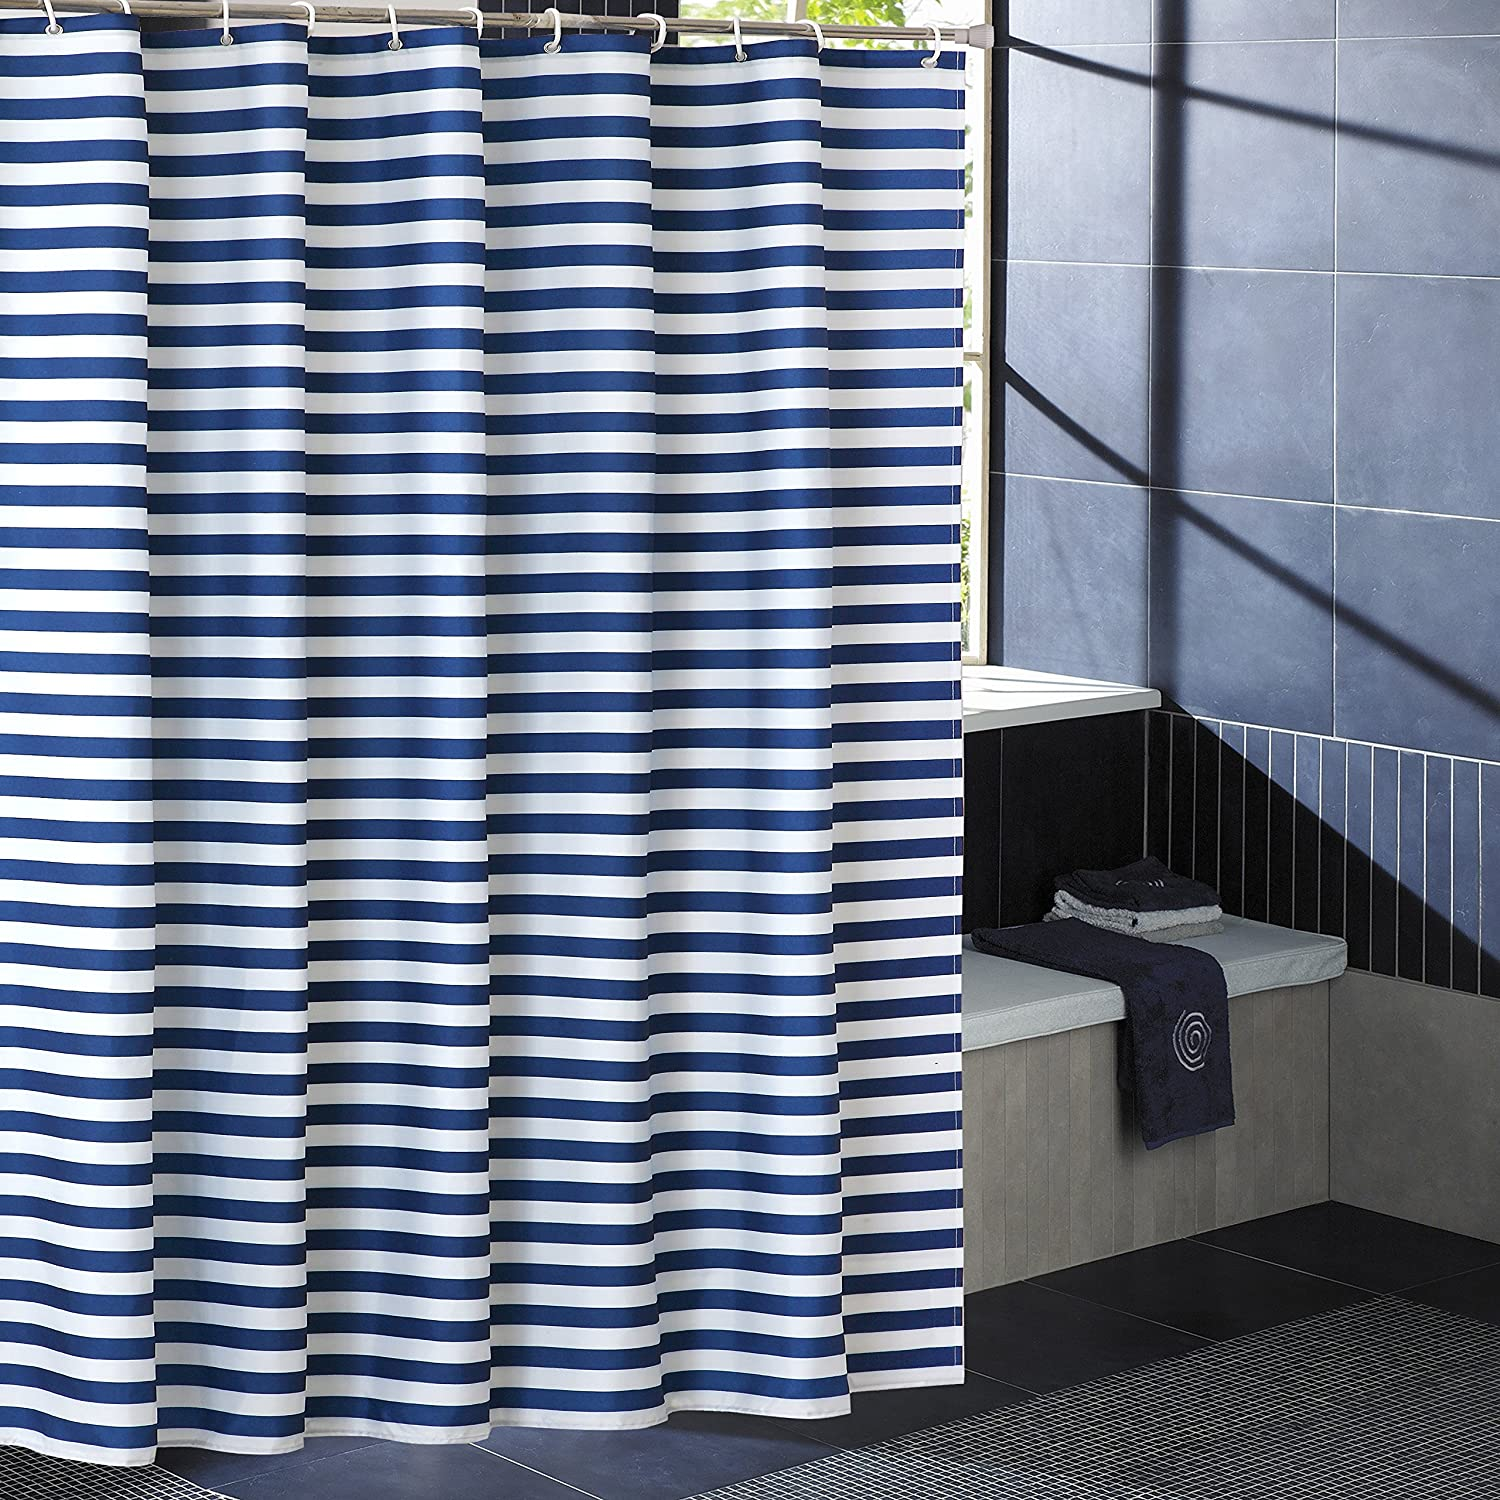 Hipaopao Navy Blue Striped Shower Curtain